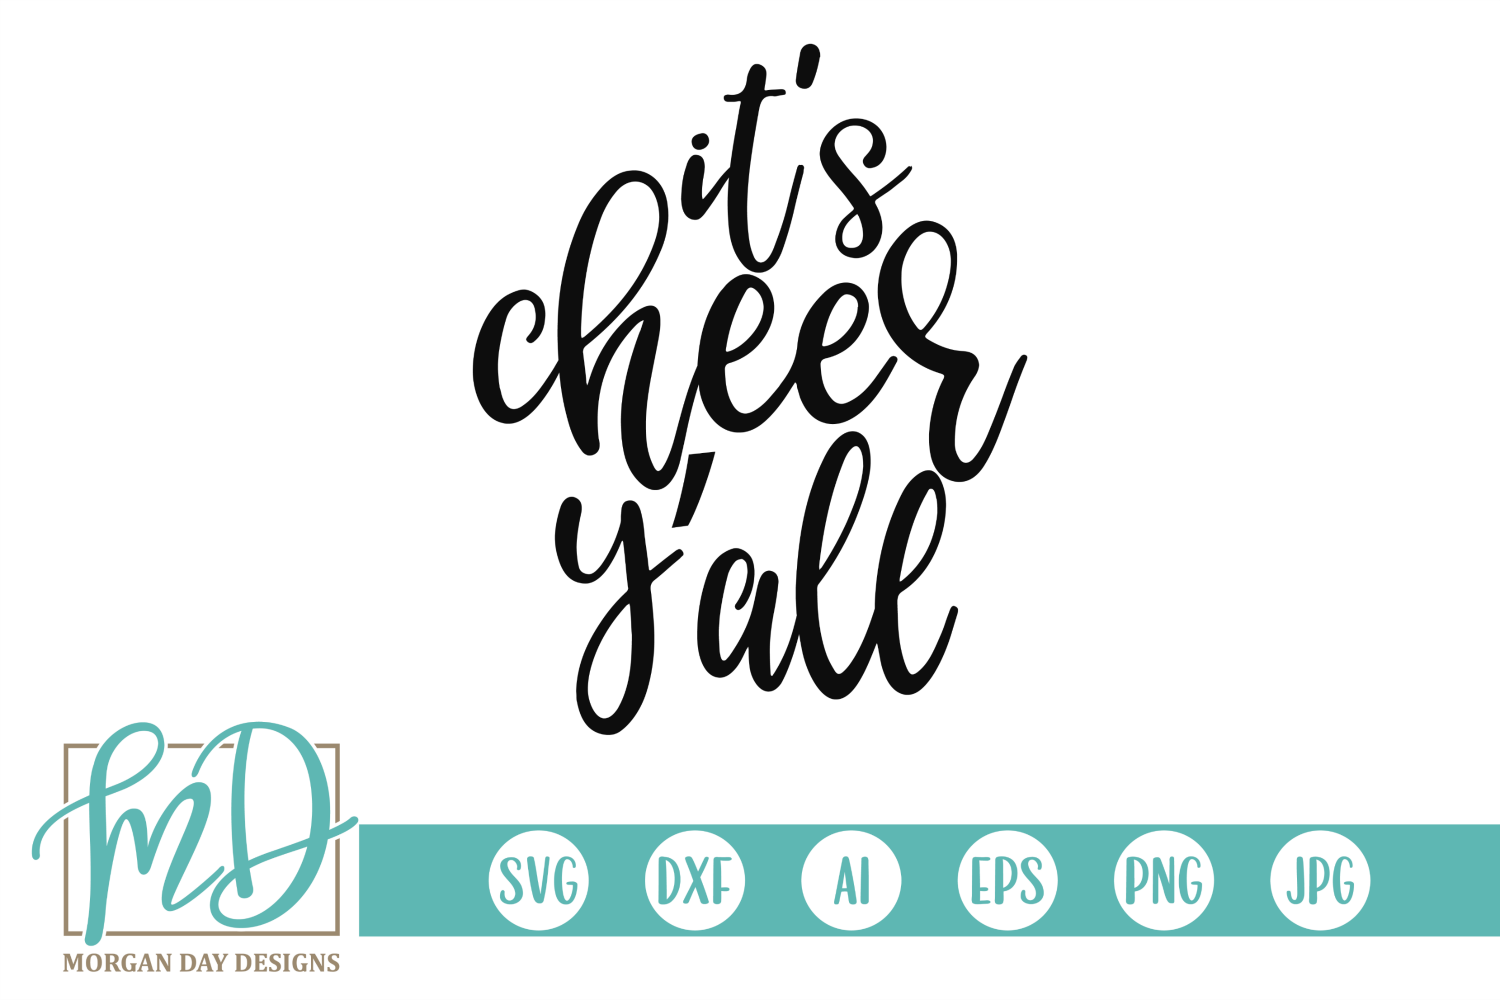 Download Free It S Cheer Y All Graphic By Morgan Day Designs Creative Fabrica for Cricut Explore, Silhouette and other cutting machines.